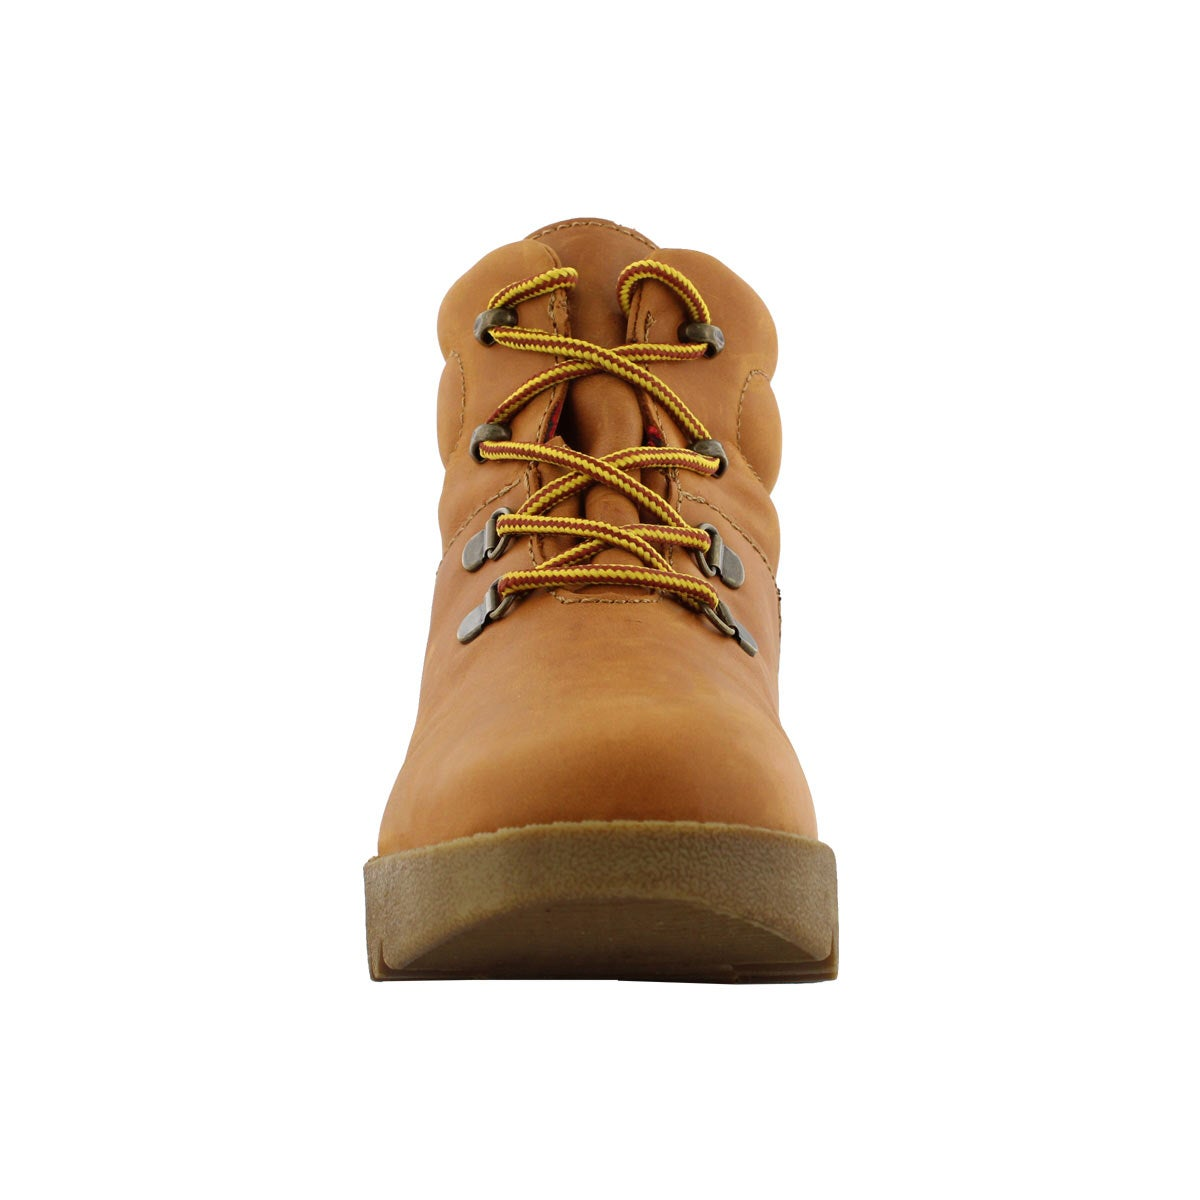 Lds Paige amb lace up wtrpf winter boot